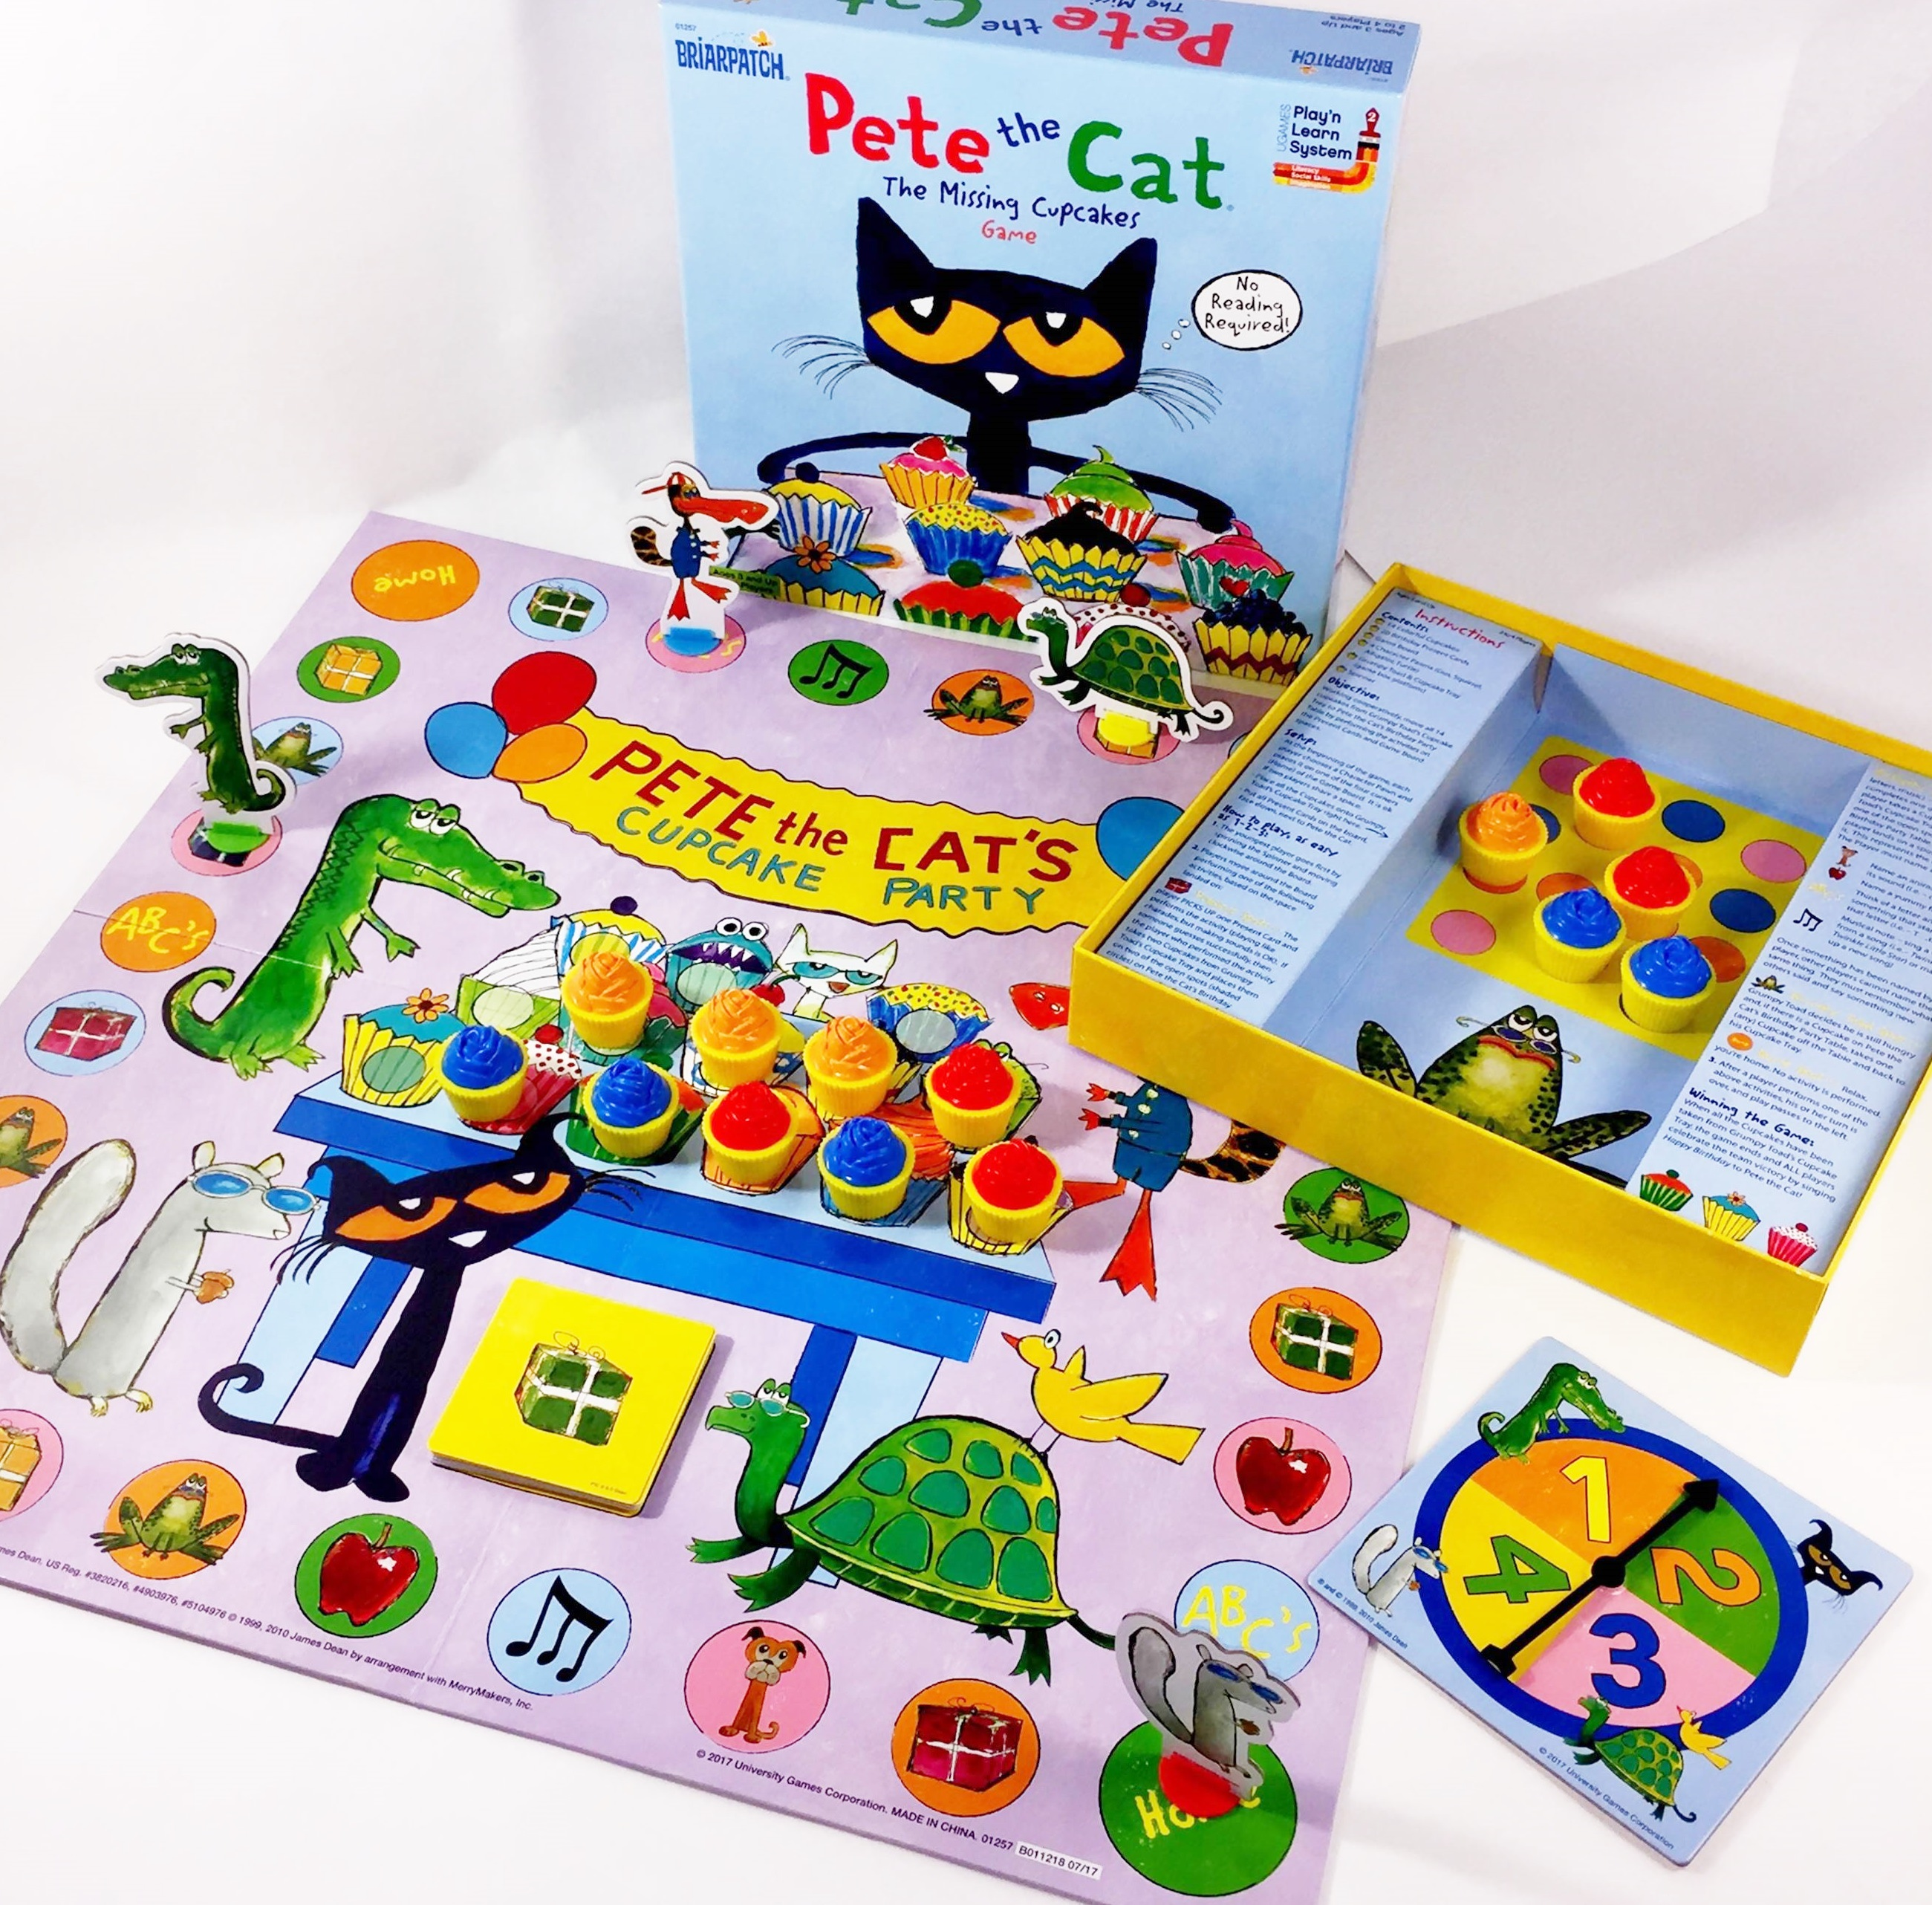 Pete The Cat Missing Cupcakes Game Walmart Com